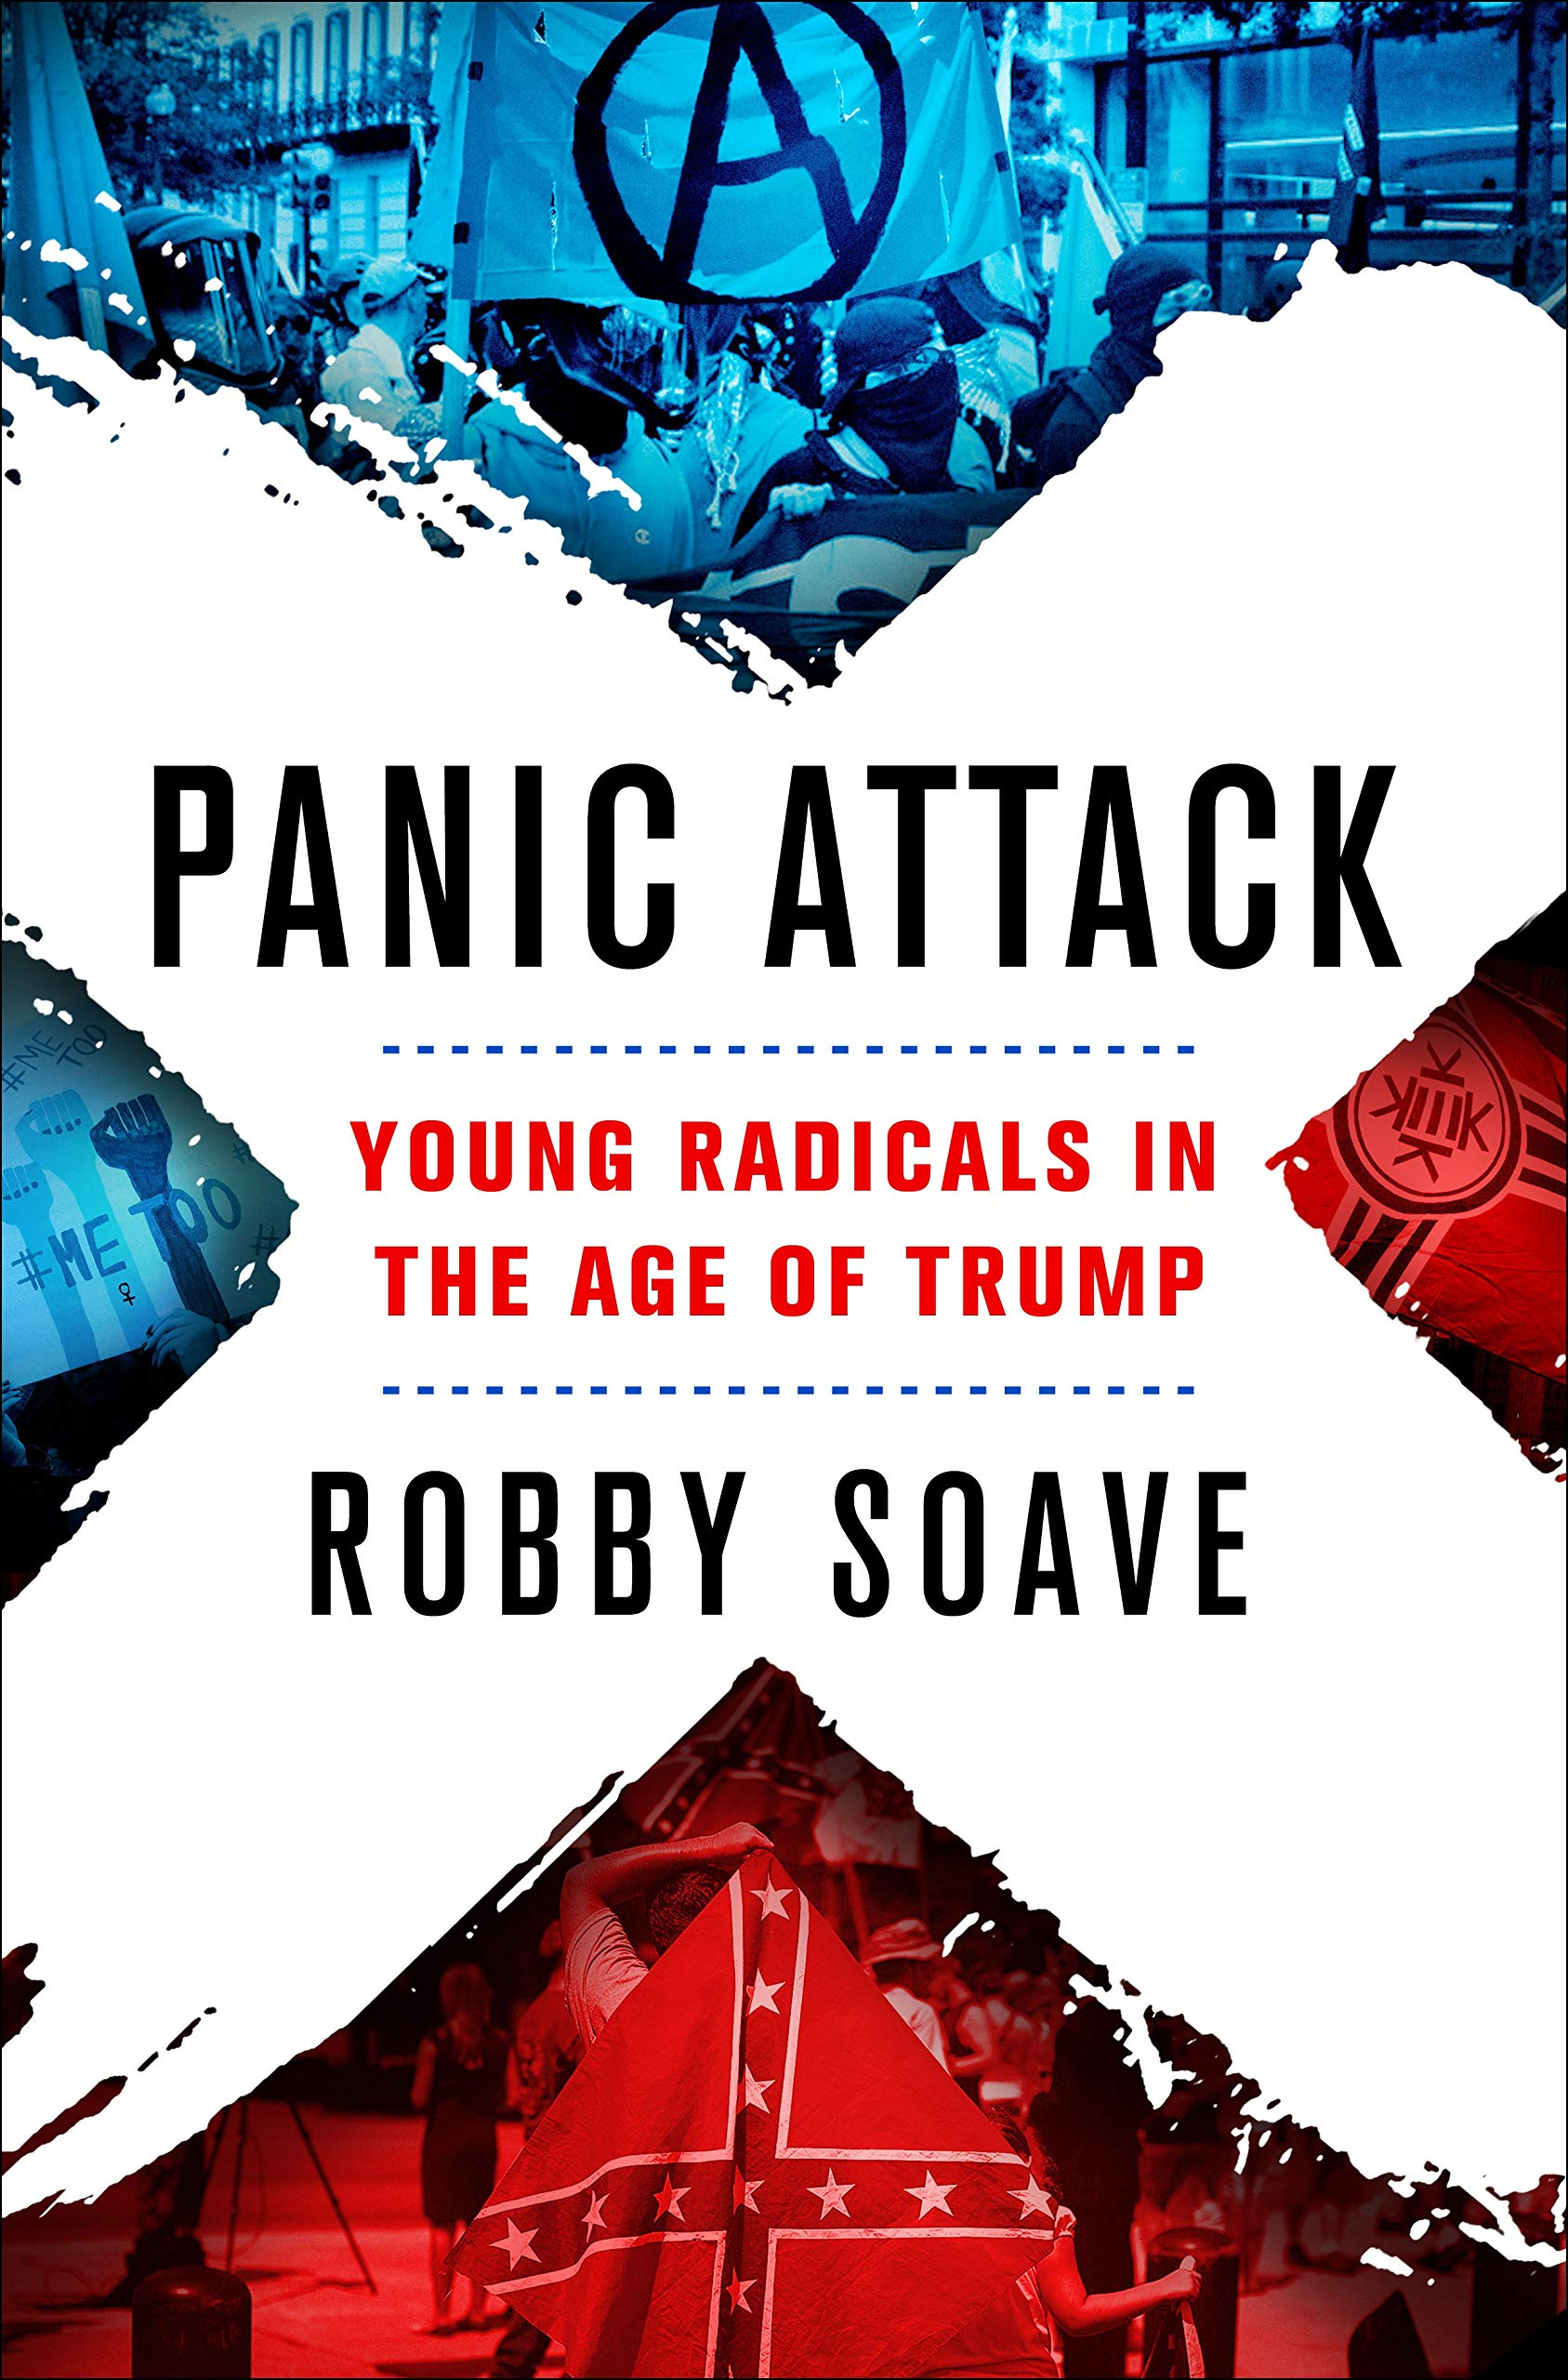 Panic Attack: Young Radicals in the Age of Trump     By Robby Soave All Points Books, 2019